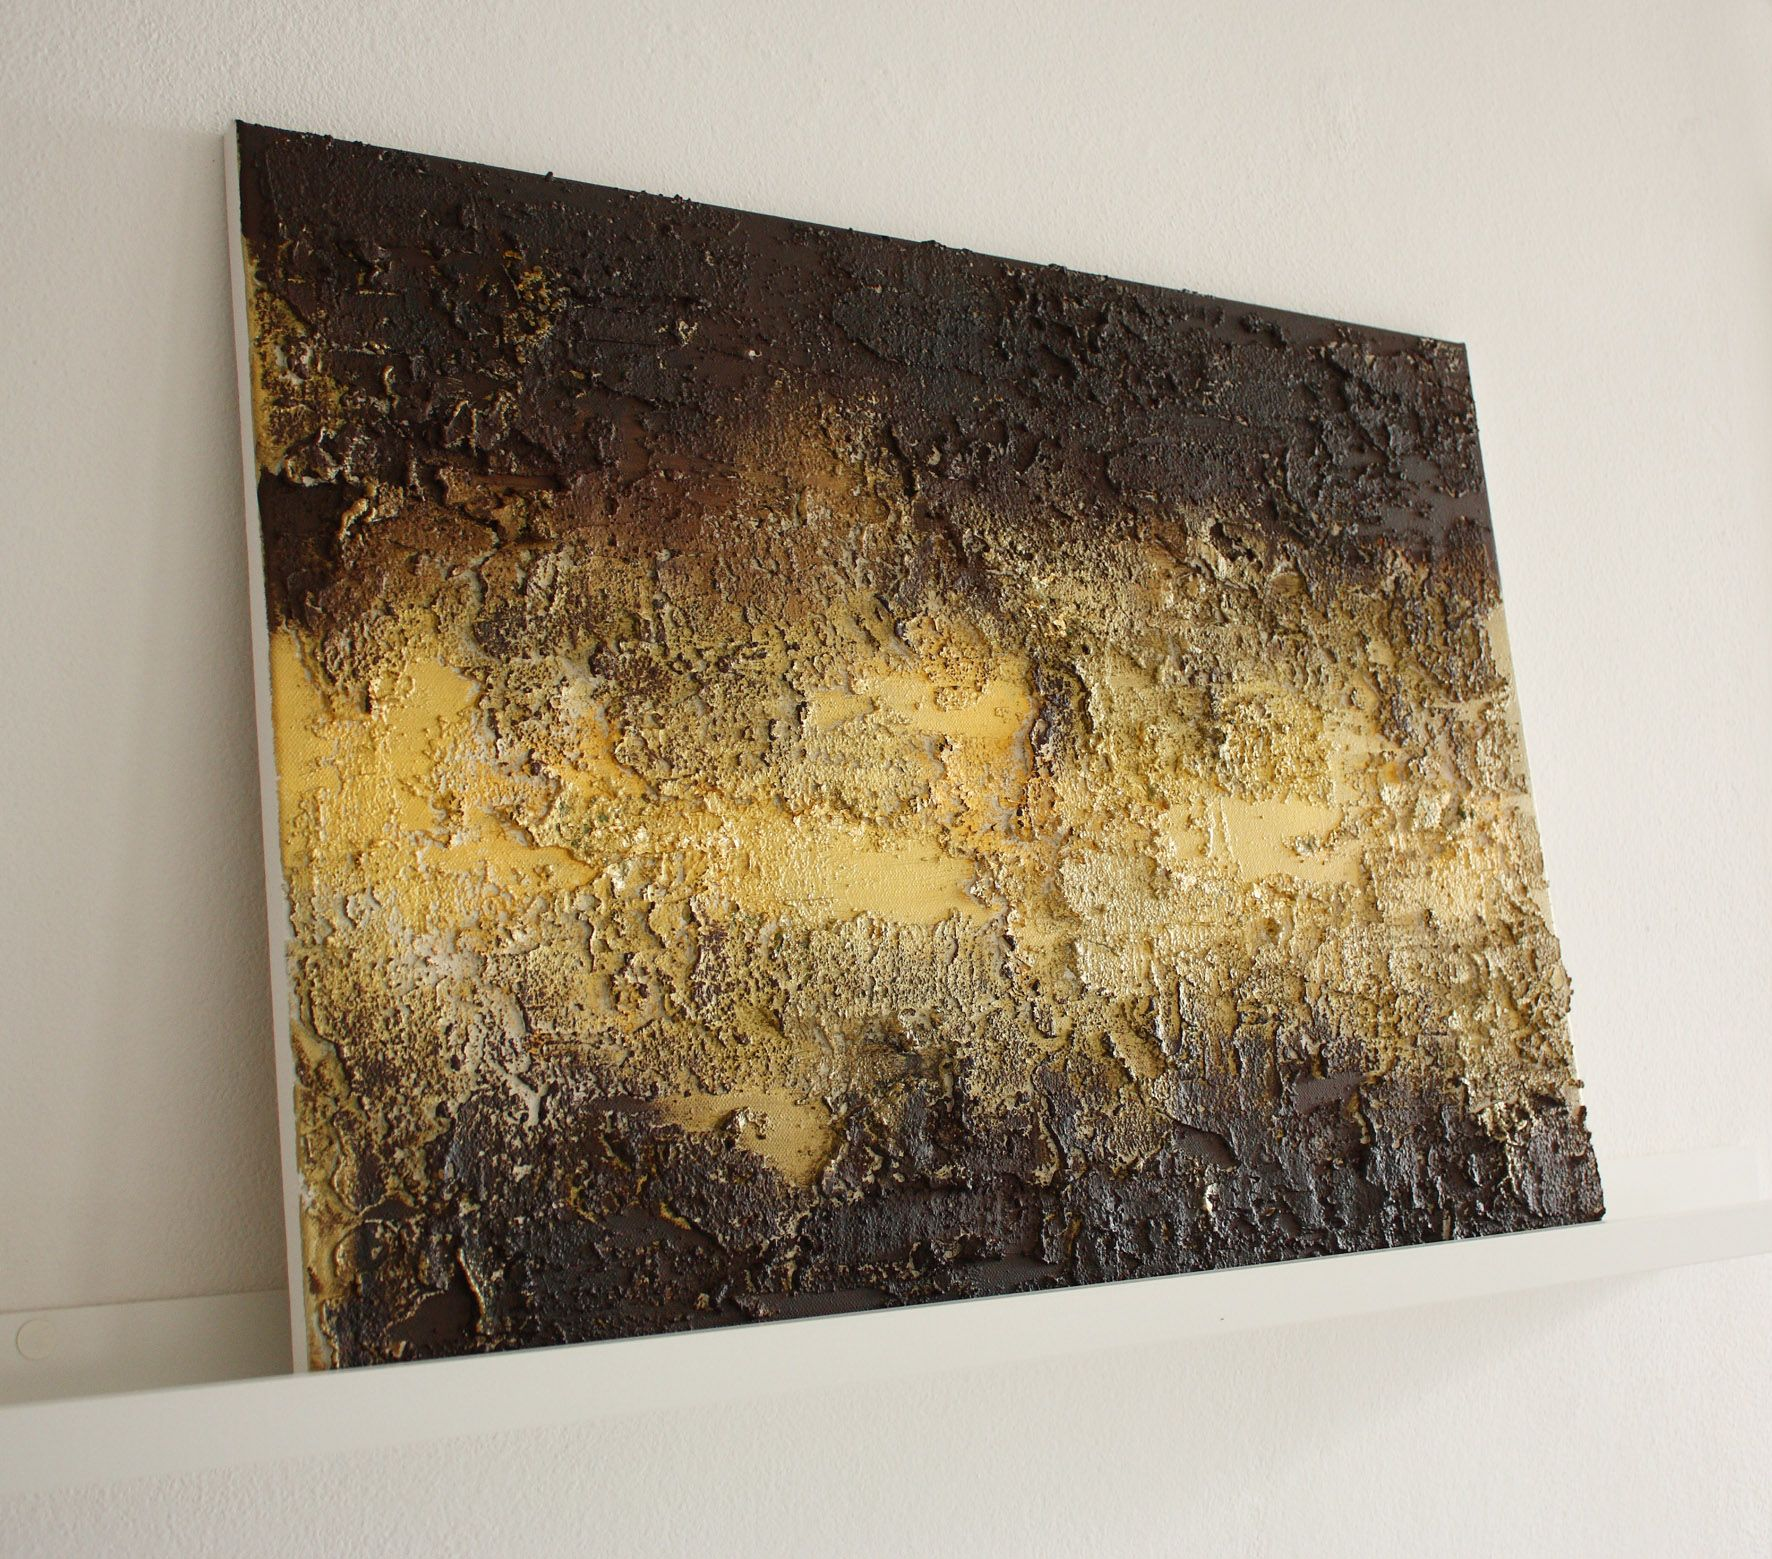 Abstract Materic Painting Stucco And Acrylic Colours On Canvas, With